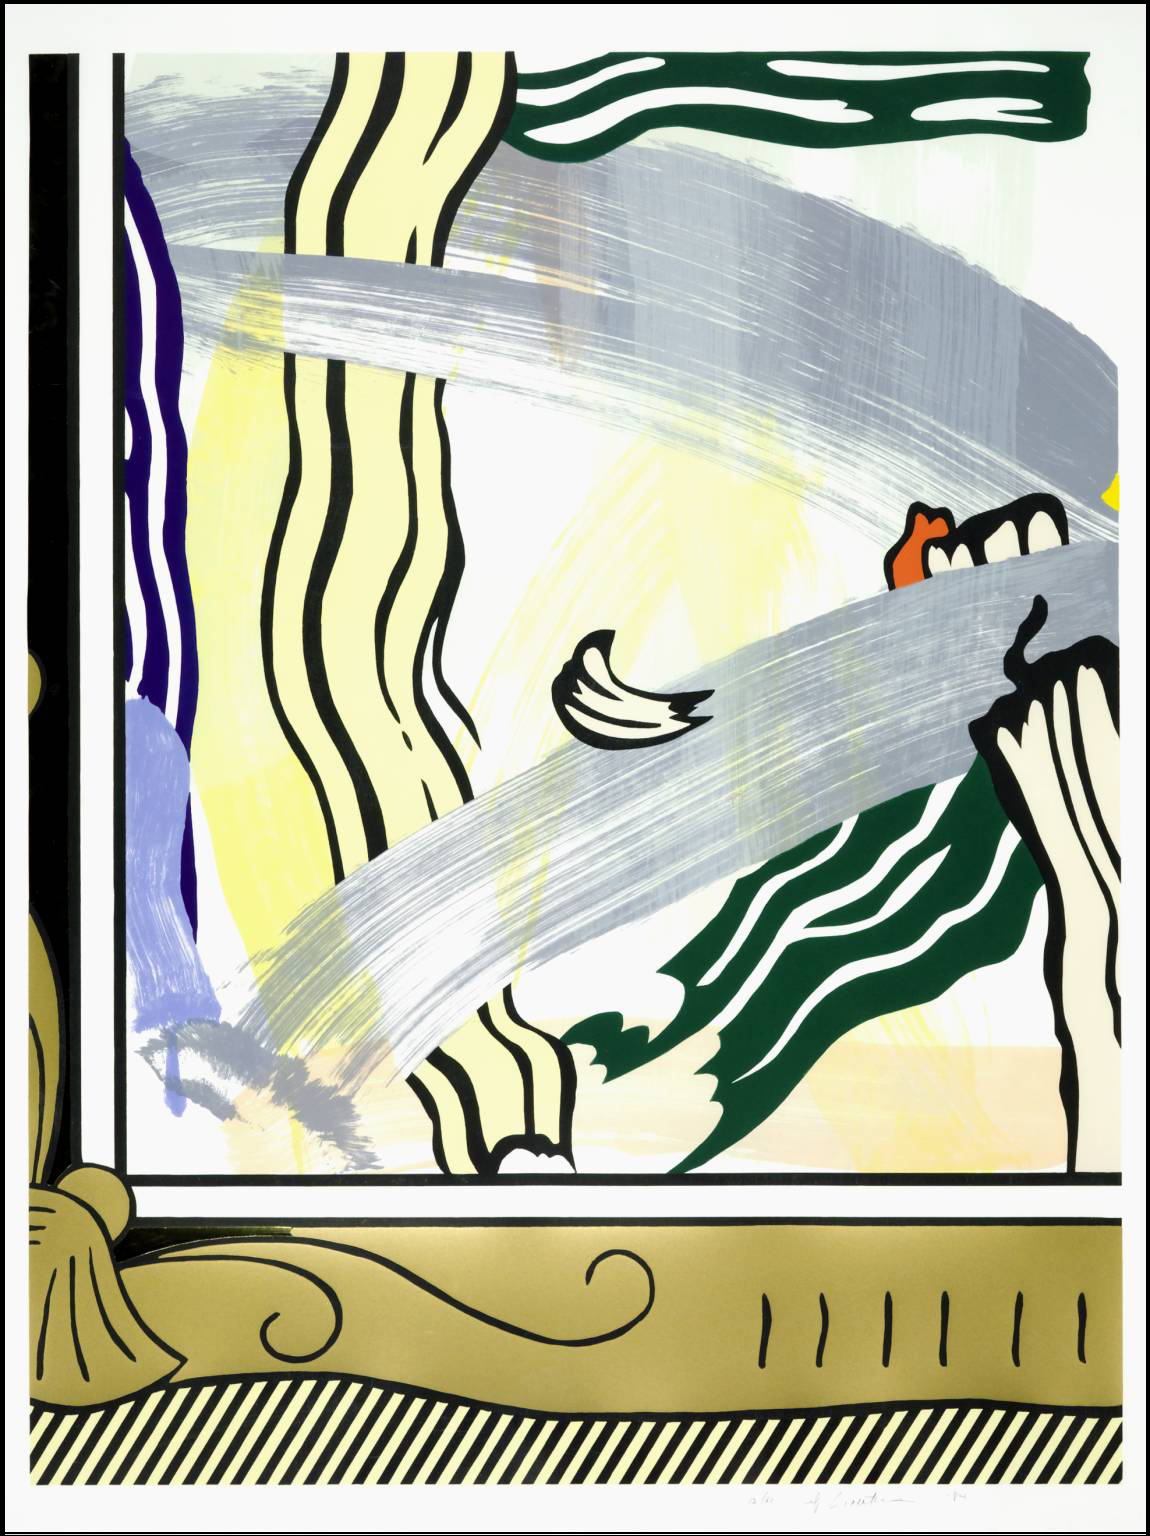 Roy Lichtenstein   Painting in Gold Frame   1984   woodcut, lithograph, screenprint, and collage on Arches 88 paper   46 1/4 x 35 15/16 inches   edition of 60